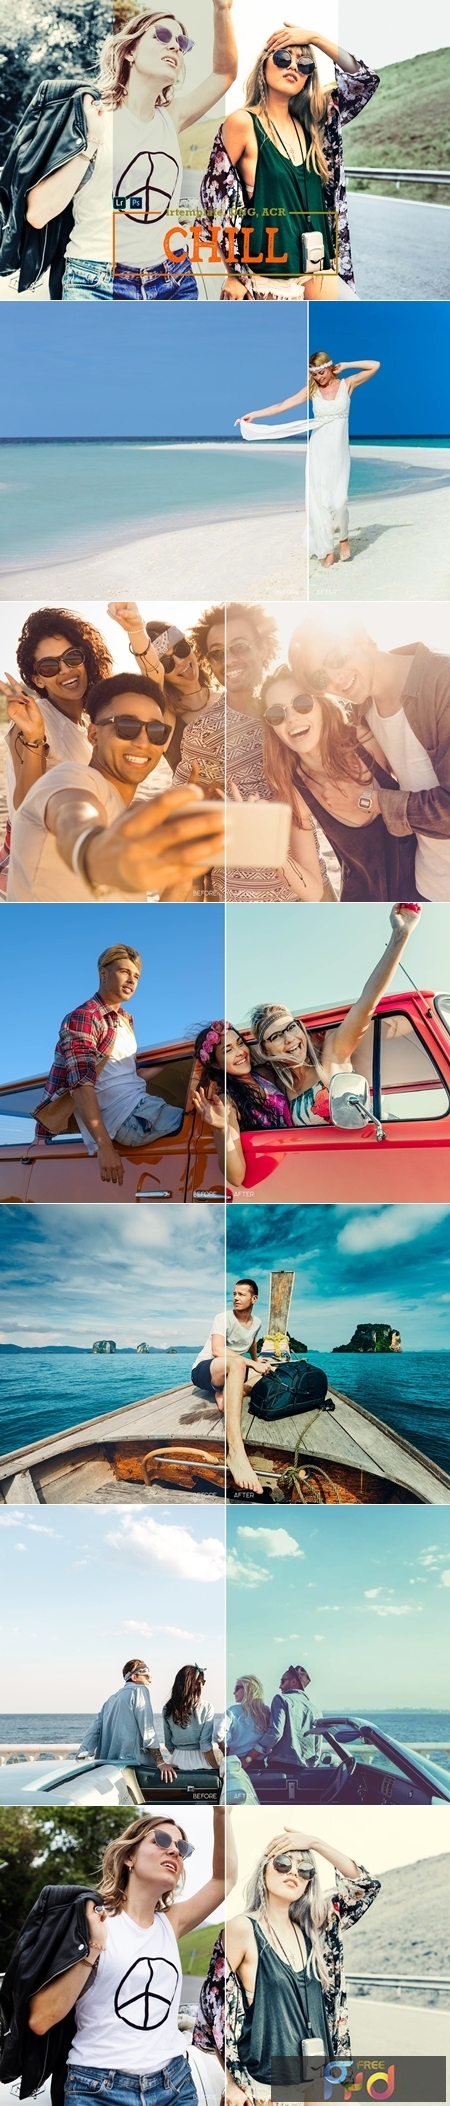 Chill LR Mobile and ACR Presets 4170388 1